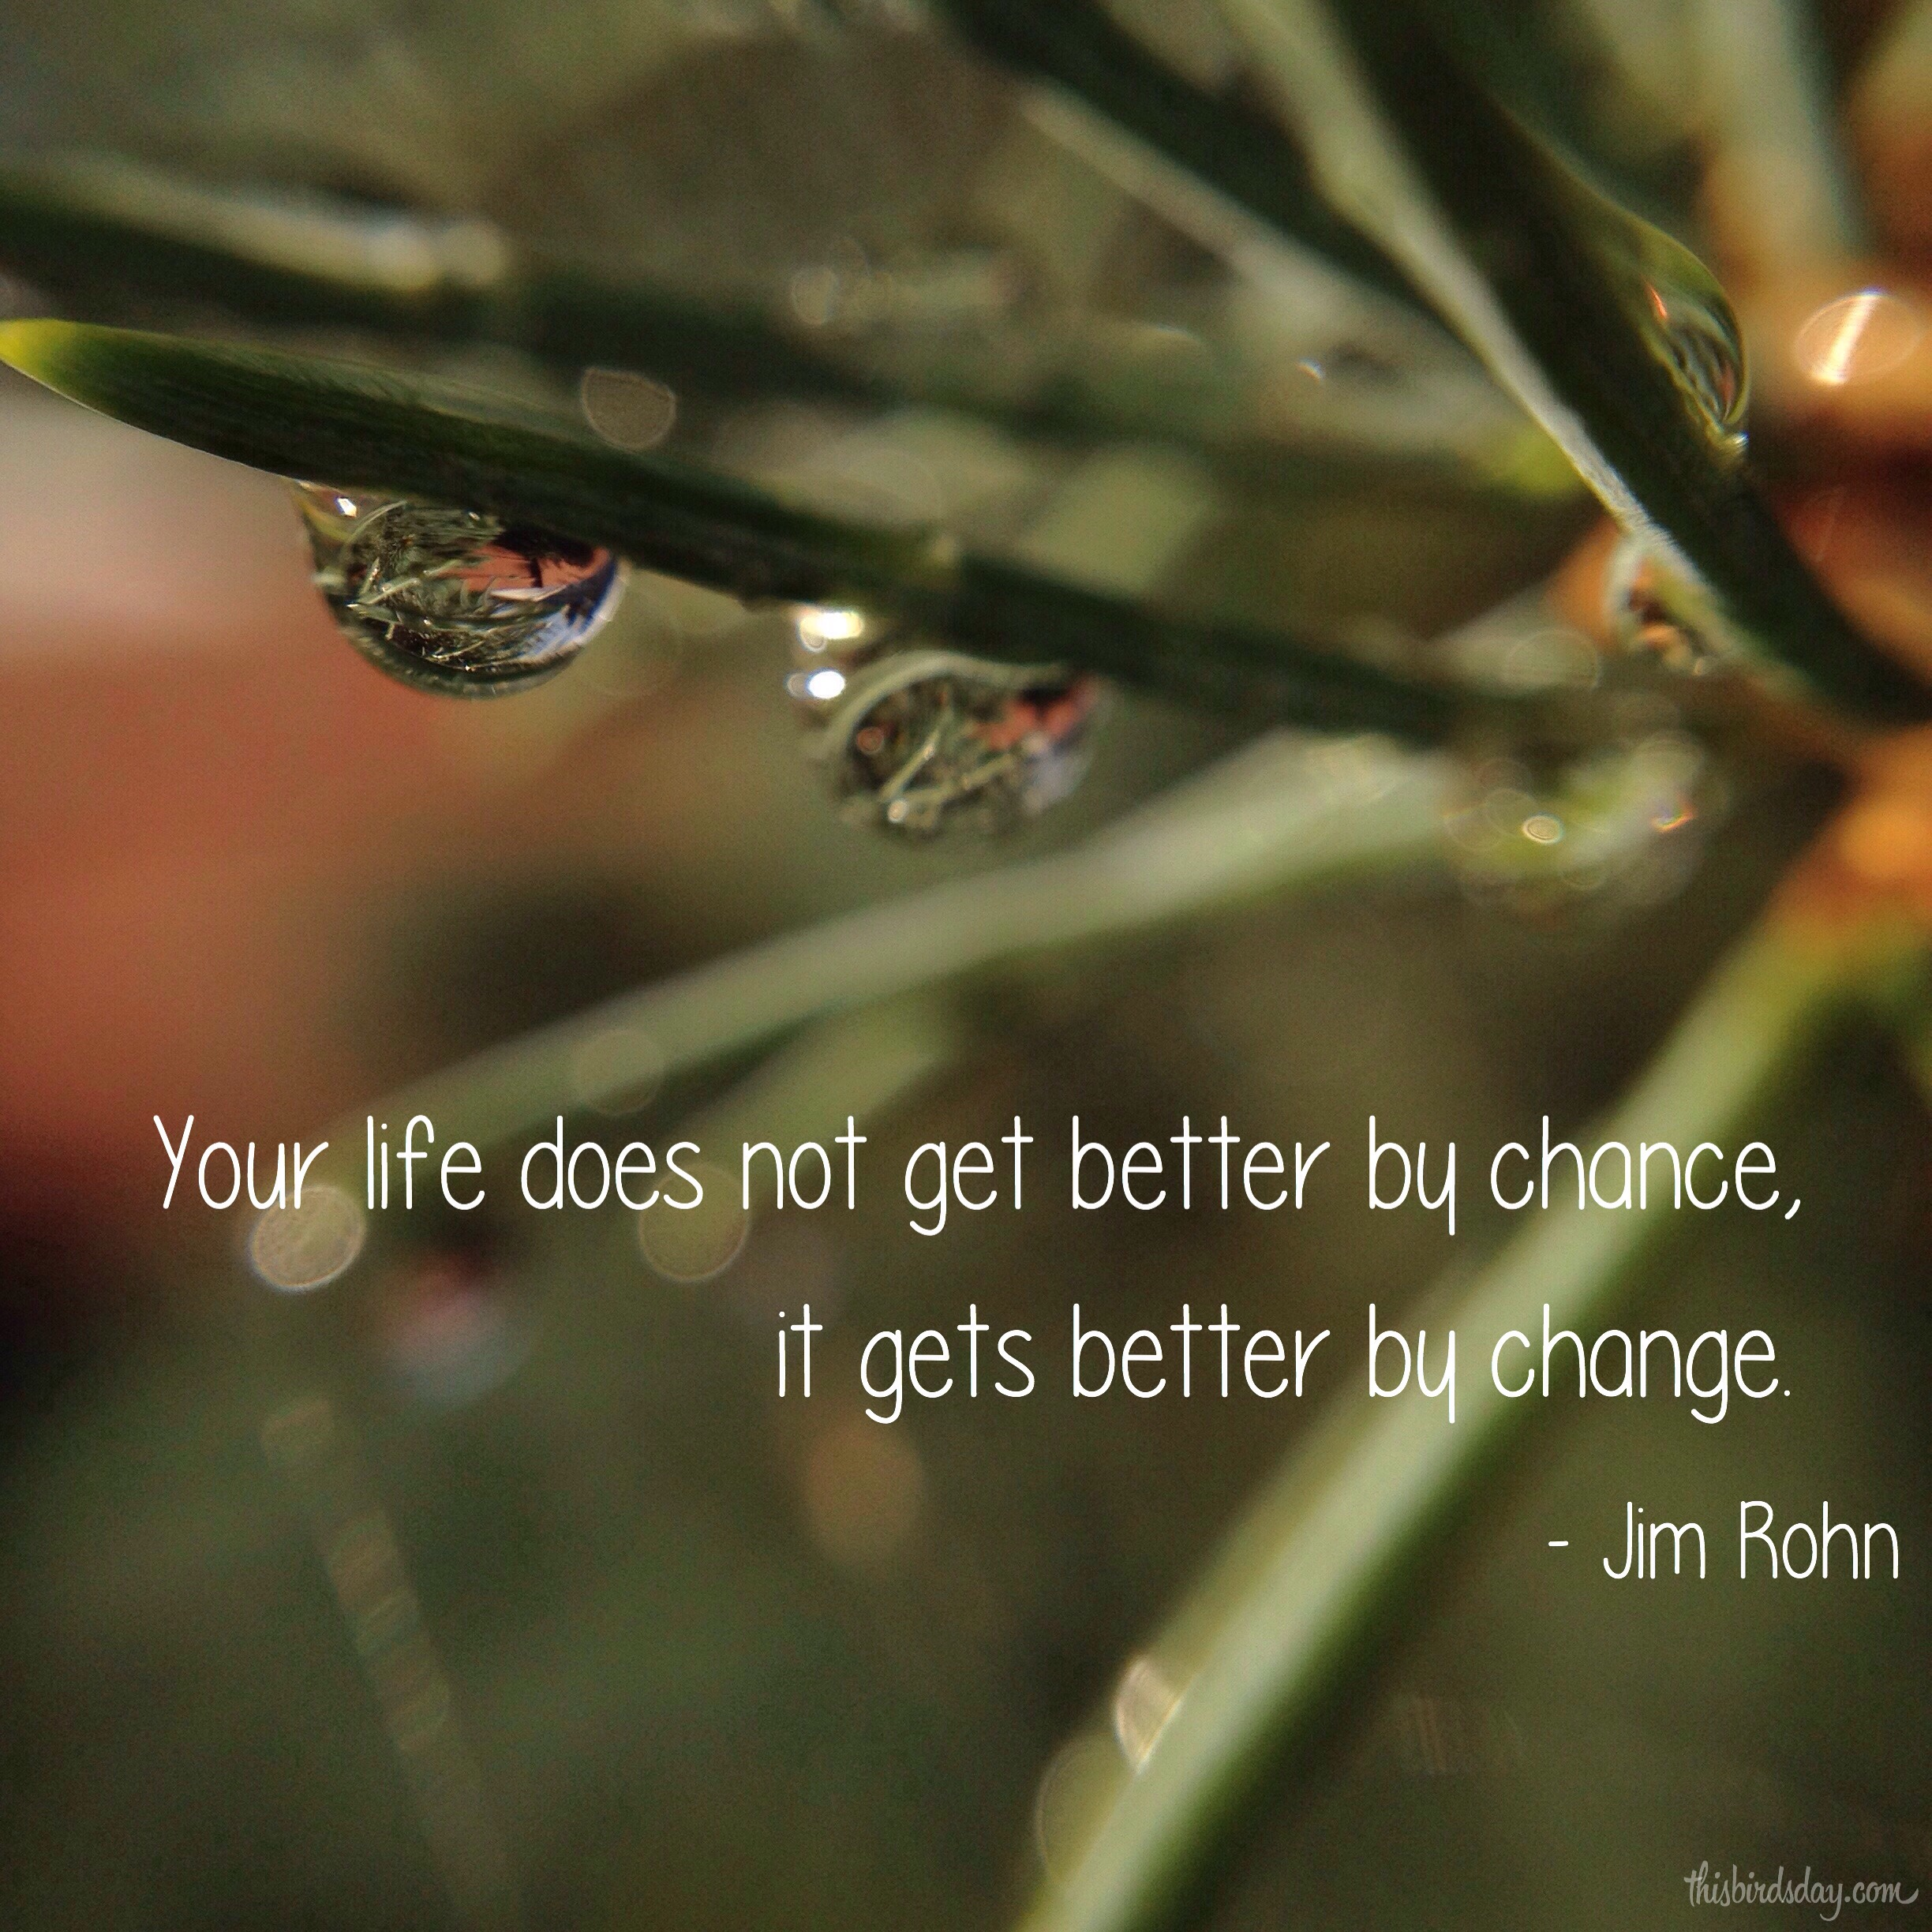 """""""Your life does not get better by chance, it gets better by change."""" Jim Rohn Photo copyrights Sheri Landry"""